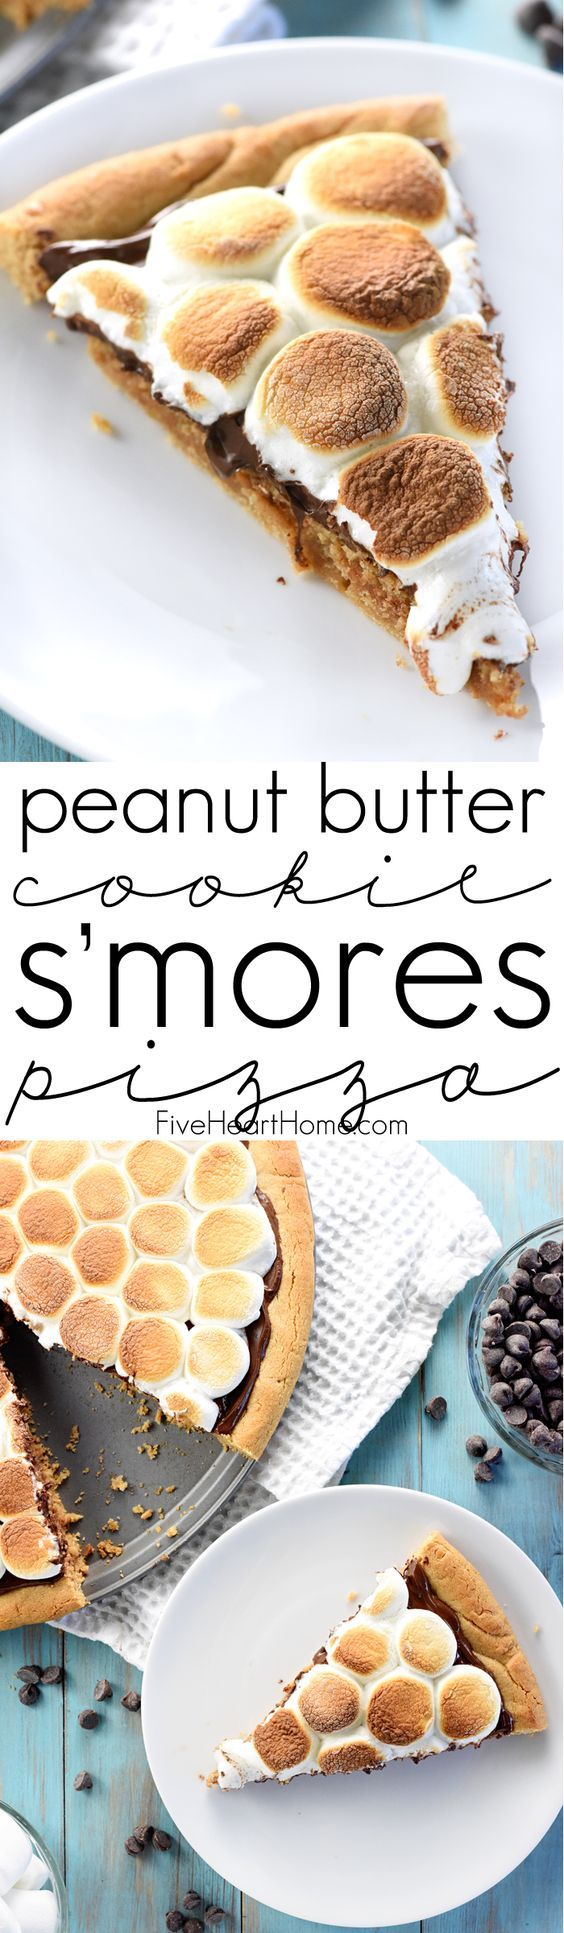 Peanut Butter Cookie S'mores Pizza  melted chocolate and toasted marshmallows top a thick chewy homemade peanut butter crust in this fun and decadent dessert recipe that's perfect for summer parties or year-round special occasions!